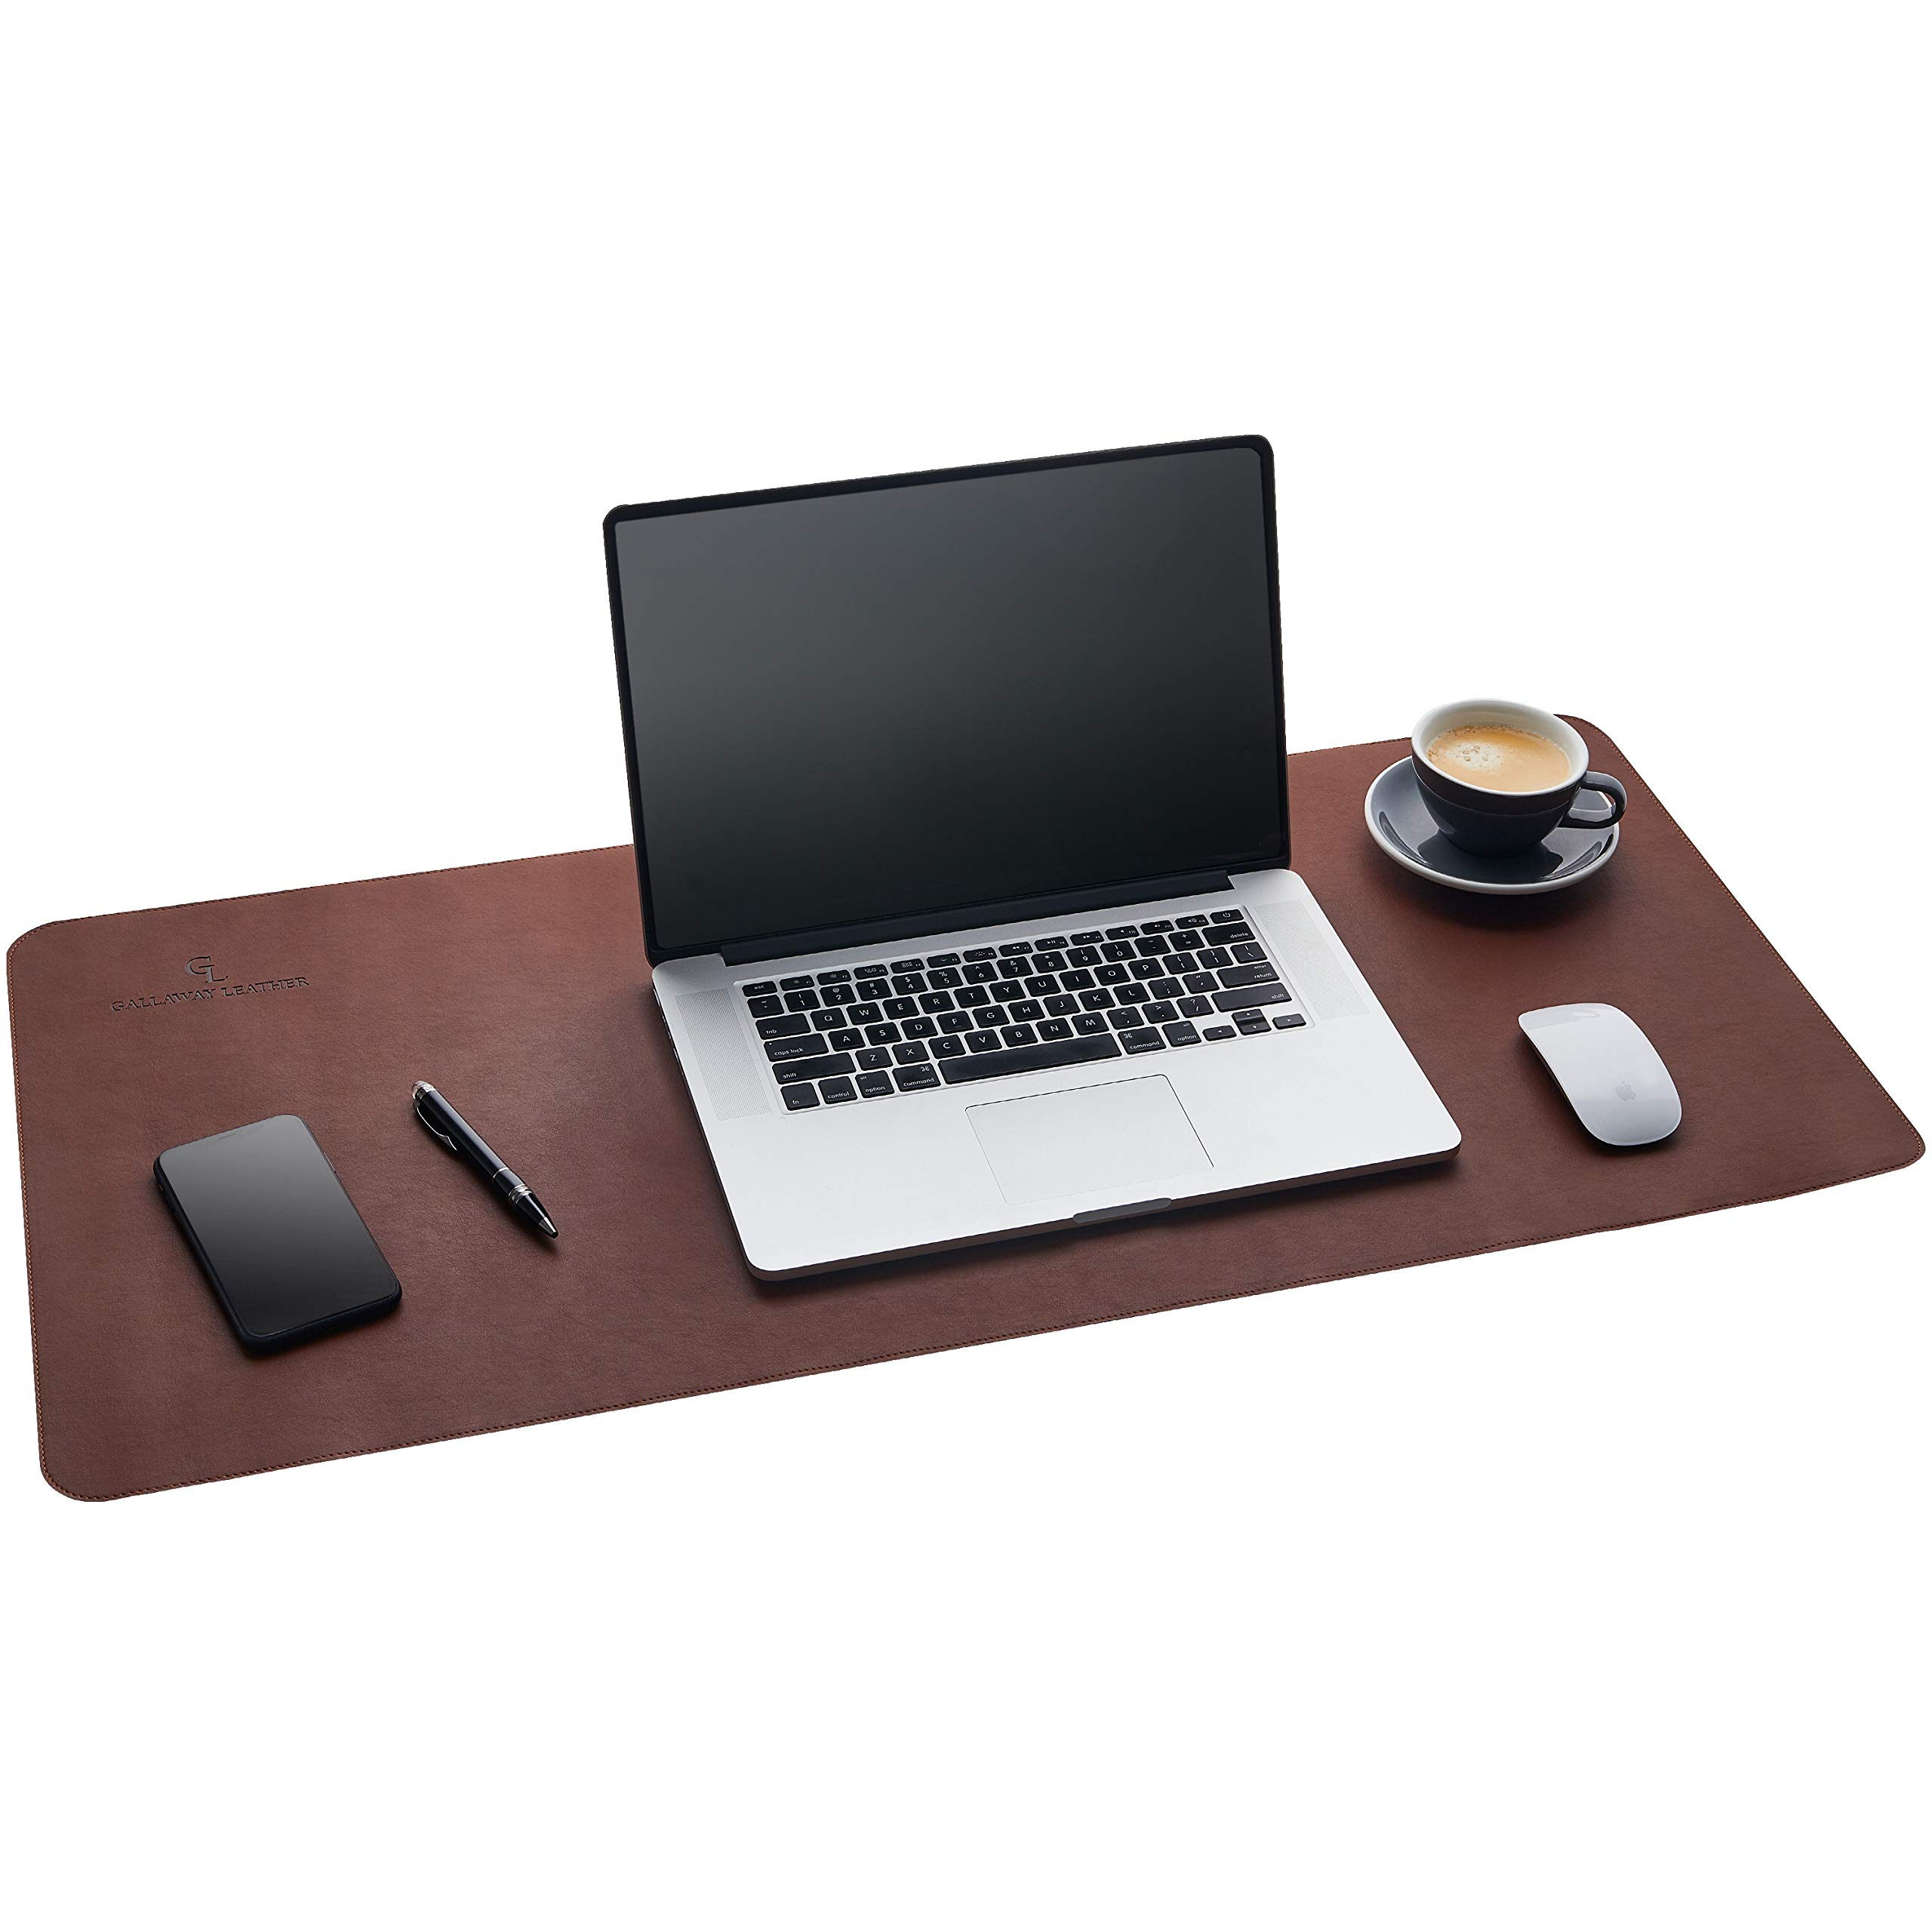 Gallaway Leather Desk Pad - Dark Brown (36 x 17) Extended Non Slip Desk Protector Premium PU Leather by Gallaway Leather